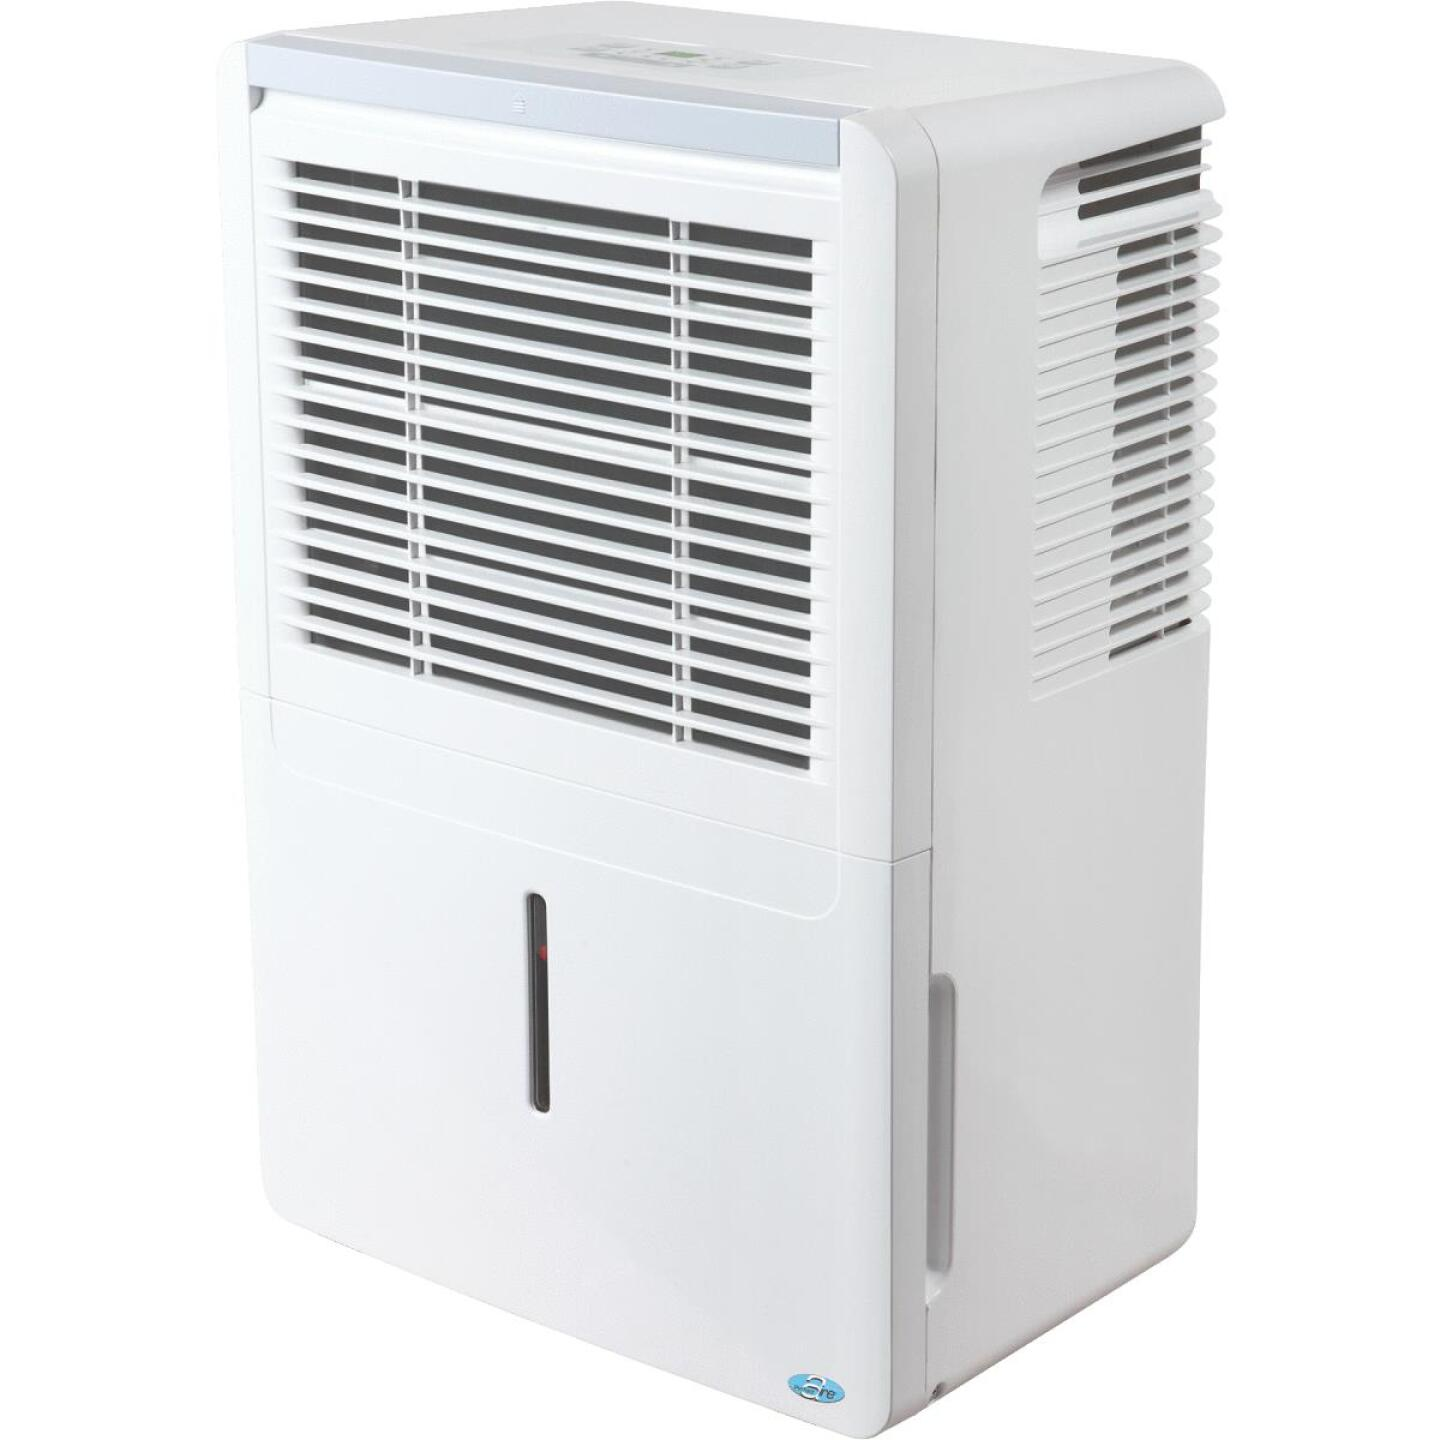 Perfect Aire 70 Pt./Day 4500 Sq. Ft. Coverage 2-Speed Dehumidifier Image 1